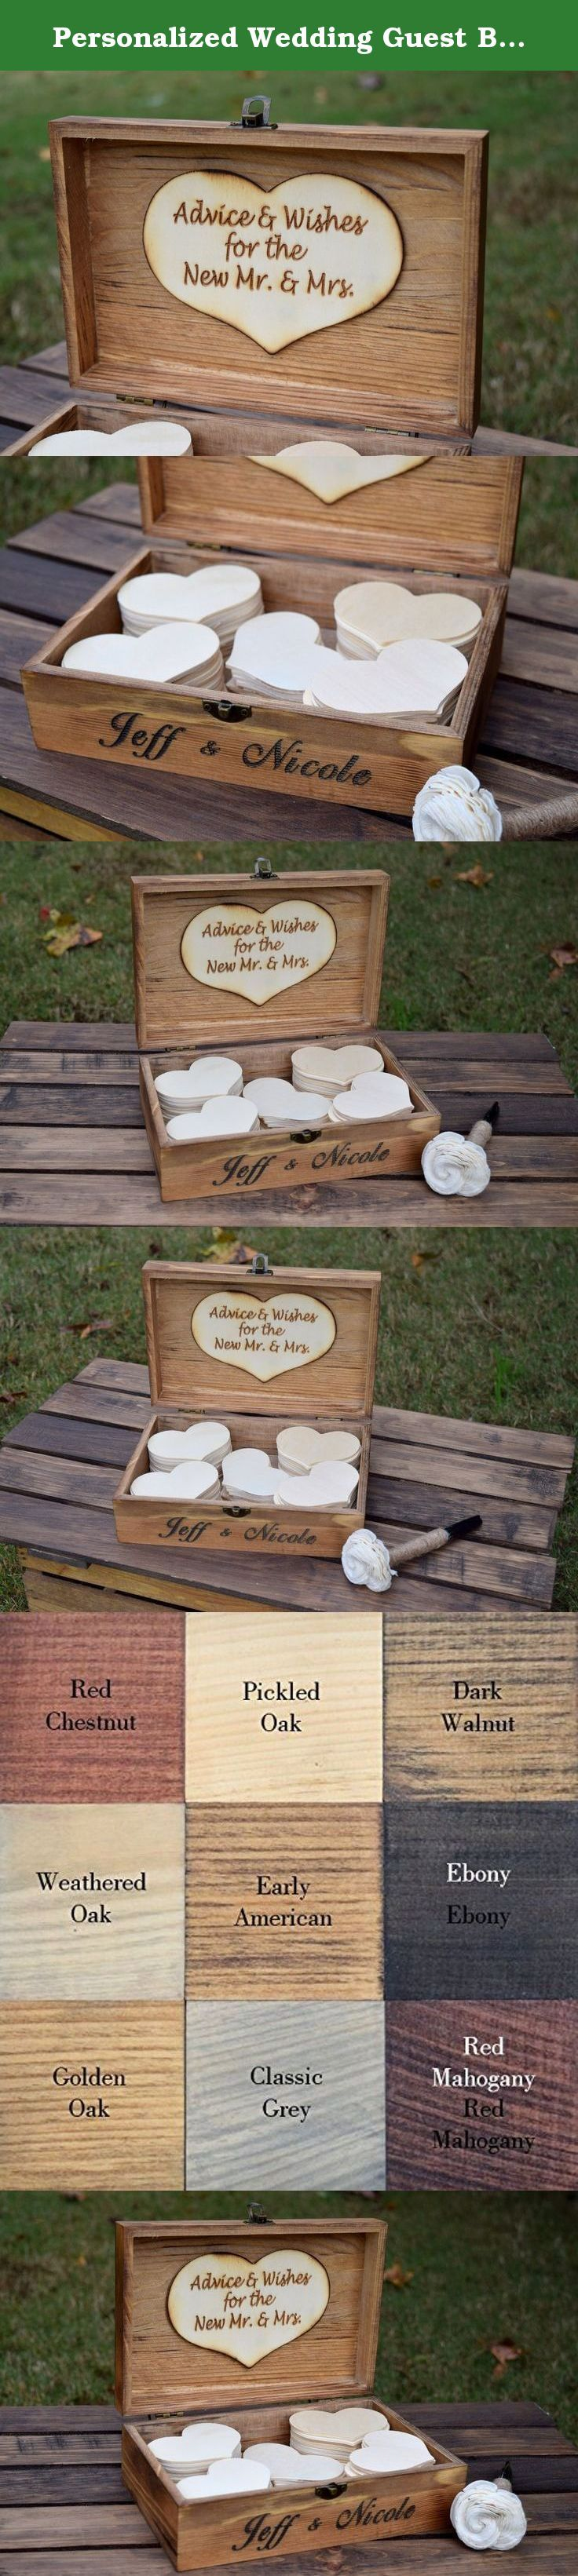 Personalized Wedding Guest Book Alternative - Wedding Advice Box - Rustic Wedding Guest Book - Guest Book for Wedding - Advice for Bride and Groom. Love this adorable advice box with wooden hearts! Perfect for weddings, bridal showers, baby showers, anniversaries, graduations and more! Personalization is totally customizable! The engraving can be done with whatever verbiage you would like! It includes engraving on the front of the box as well as the attached engraved wooden heart on the...